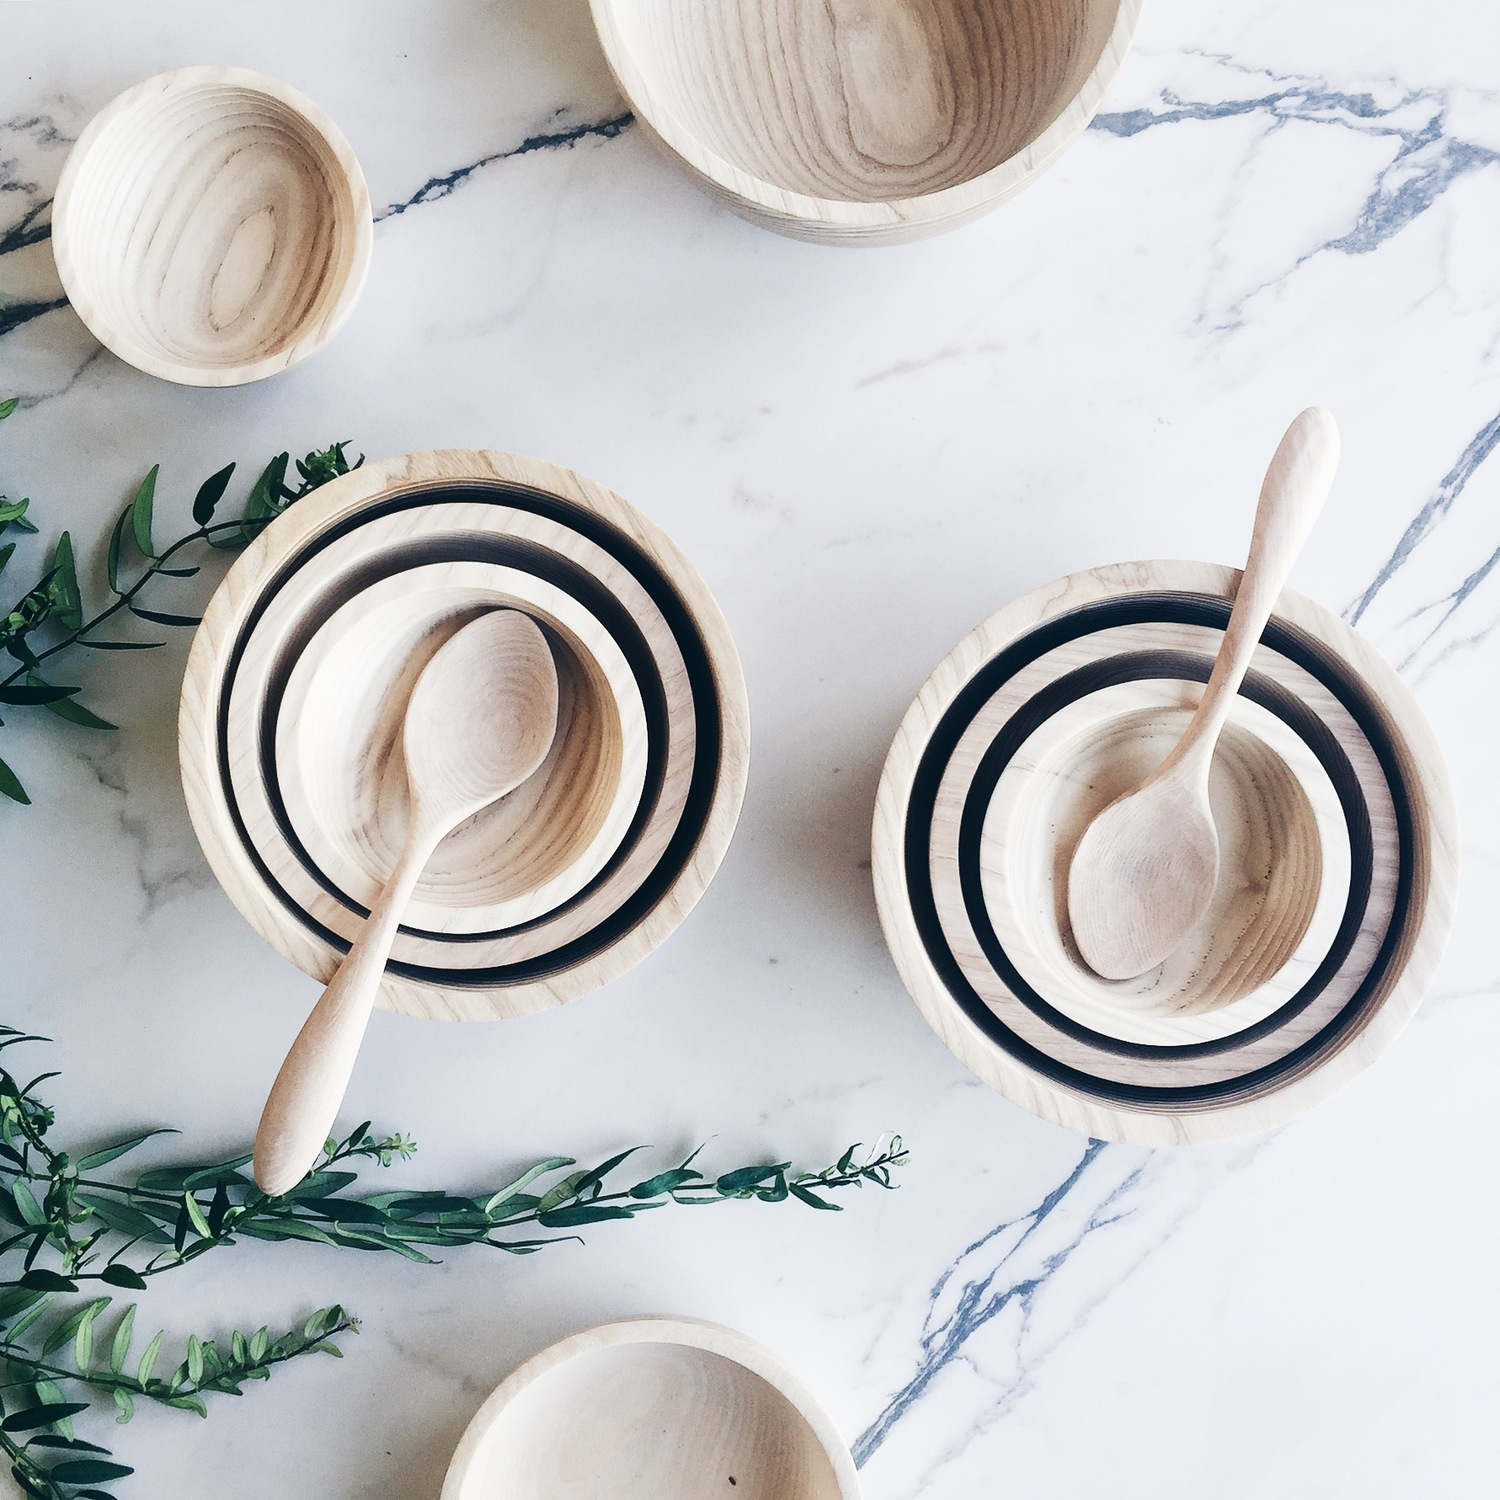 Design Lookout 08 : Wood & Woven | InBetween the Curls